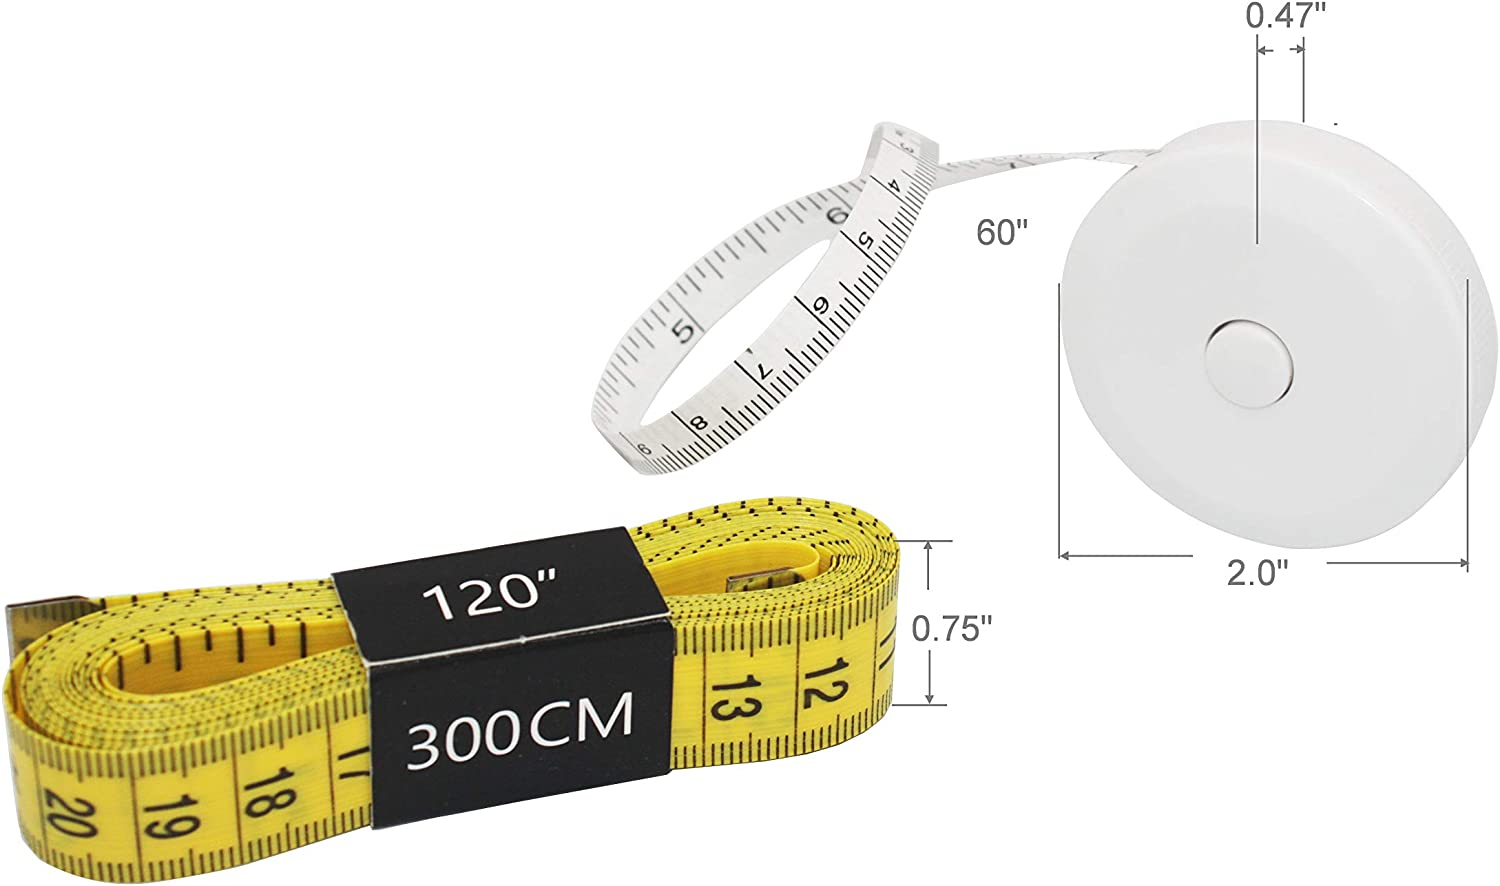 3 Packs White Soft Tape Measure 120 inches 300cm Sewing Ruler Tailor Hand Scale Body Cloth Shoes Crafts Flexible Measurement